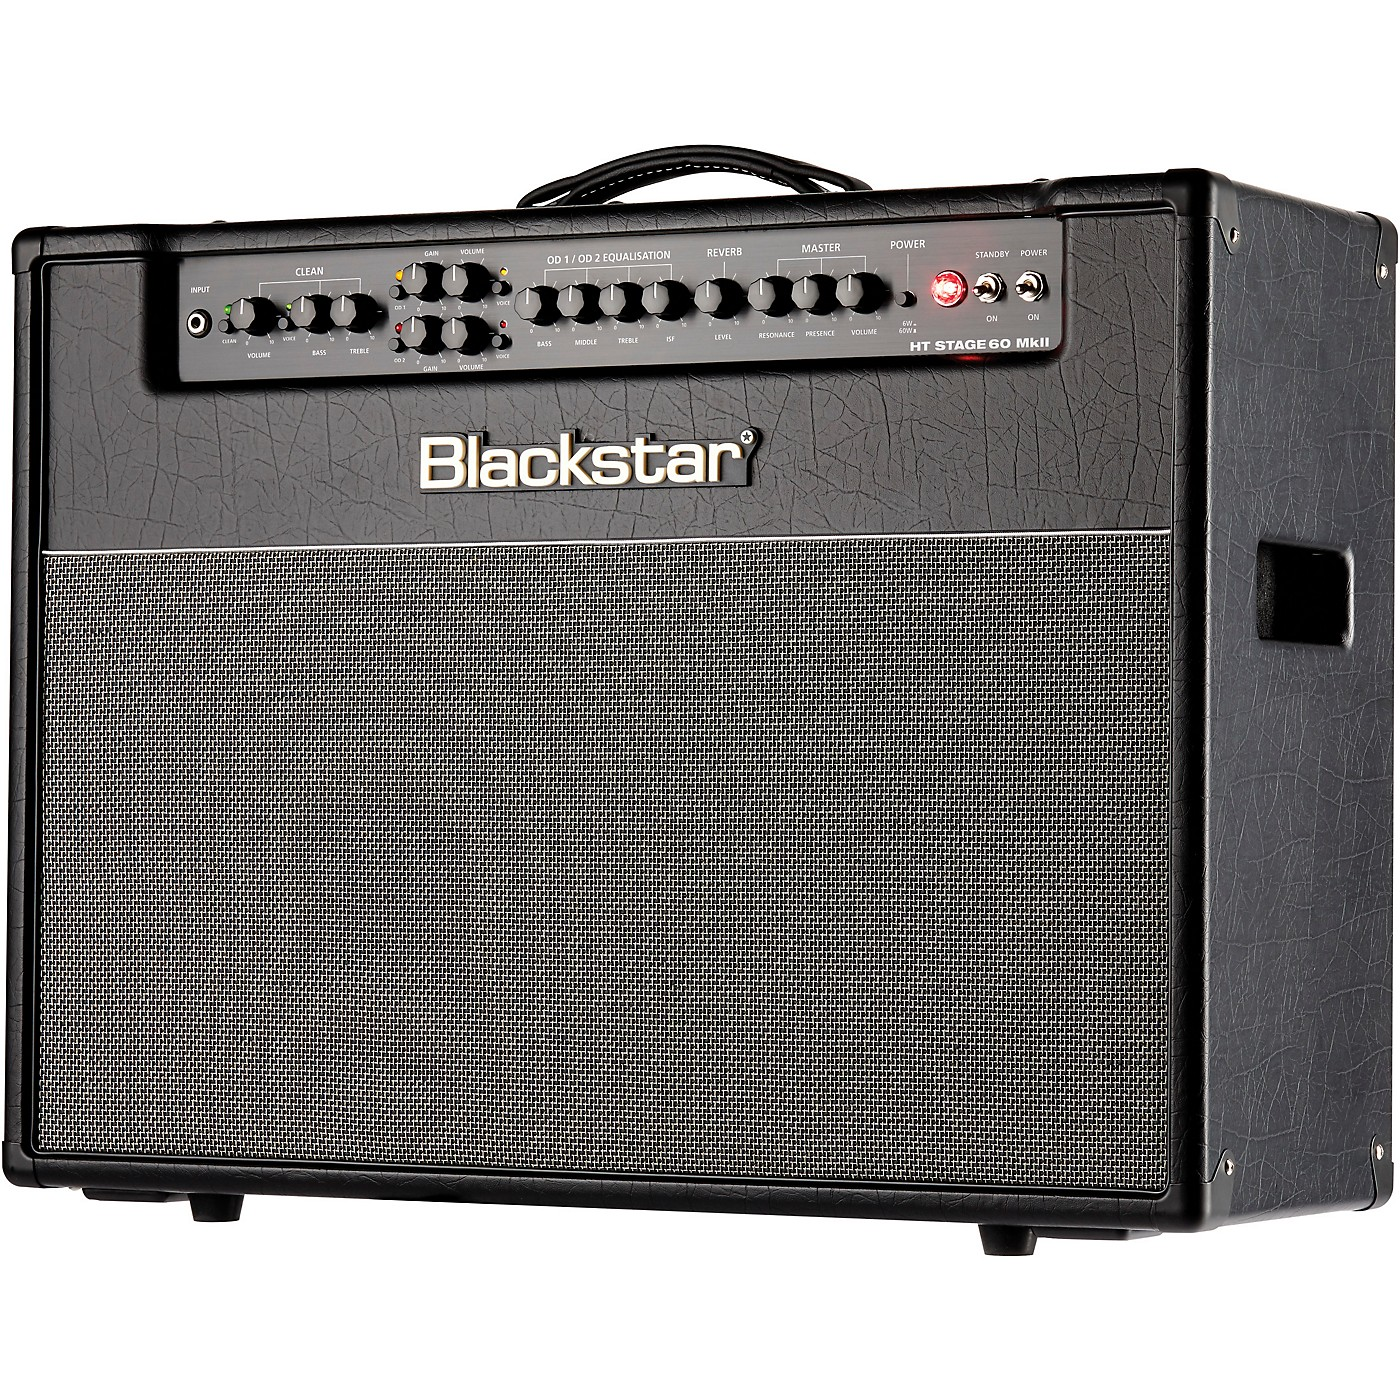 Blackstar HT Venue Series Stage 60 MKII 60W 2x12 Tube Guitar Combo thumbnail